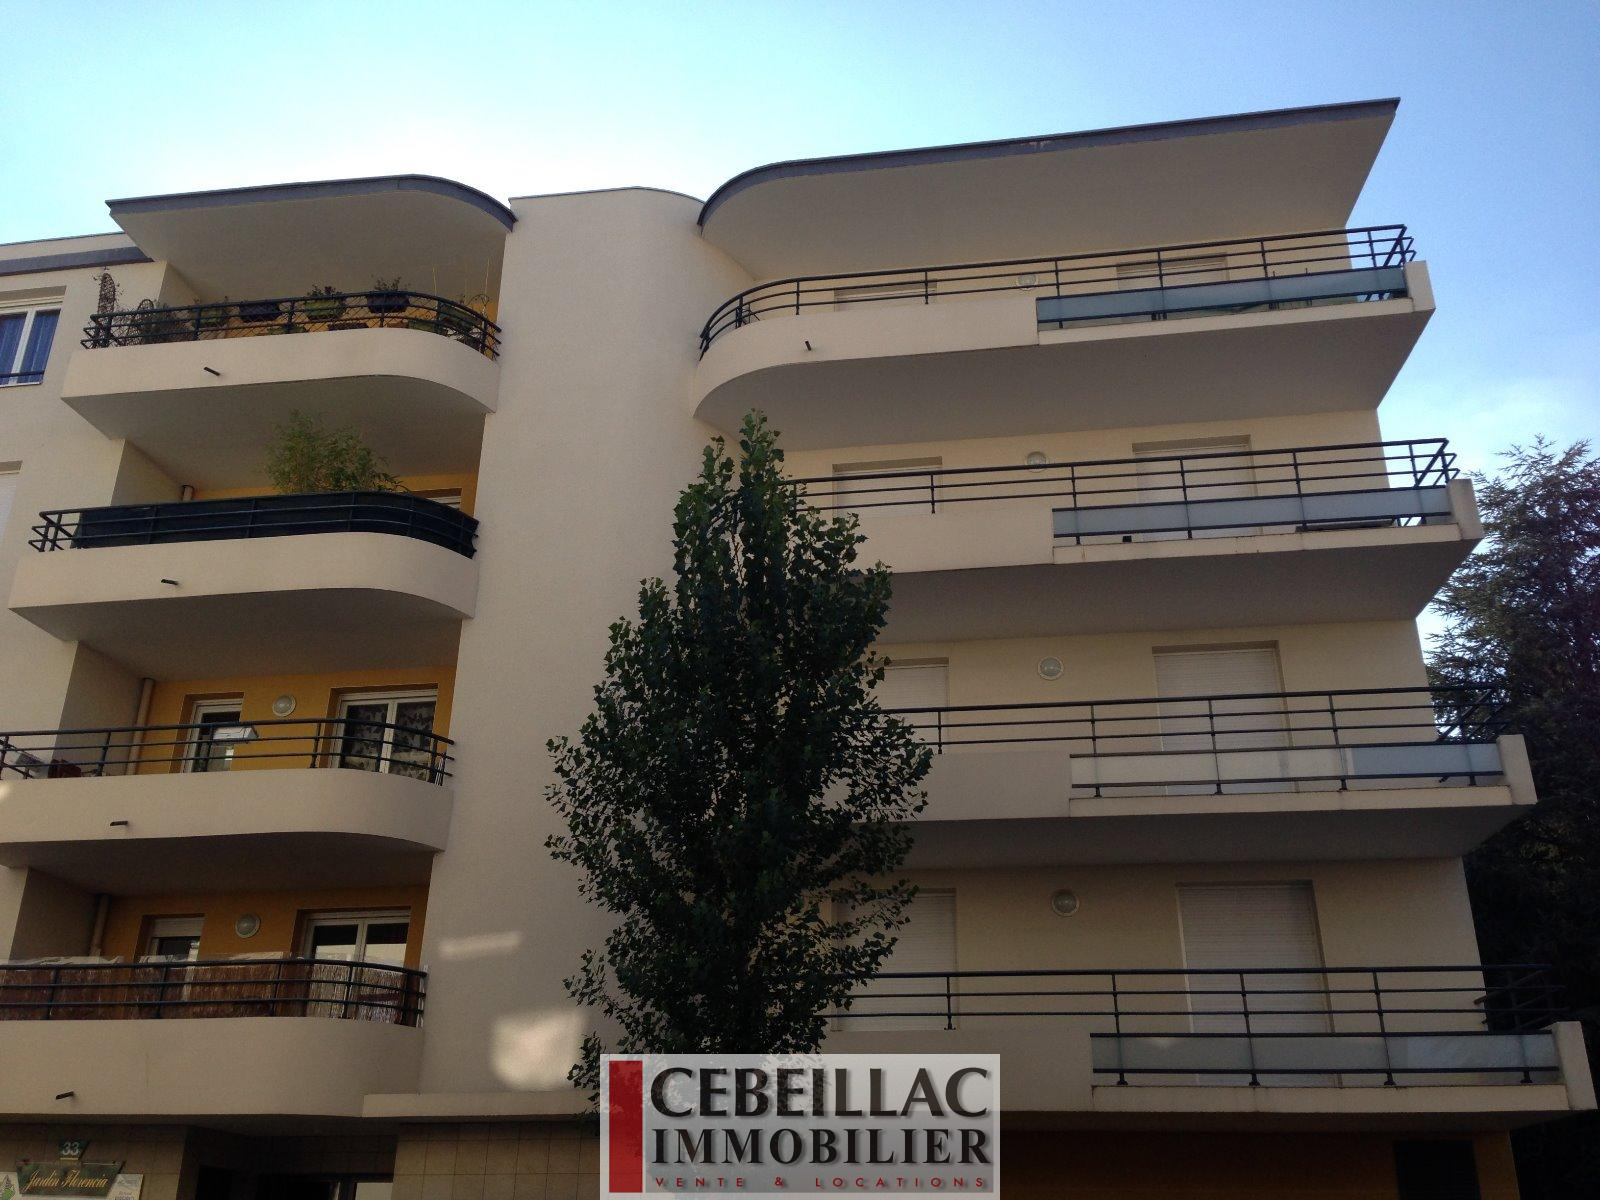 Location cebeillac immobilier - Location meublee clermont ferrand ...